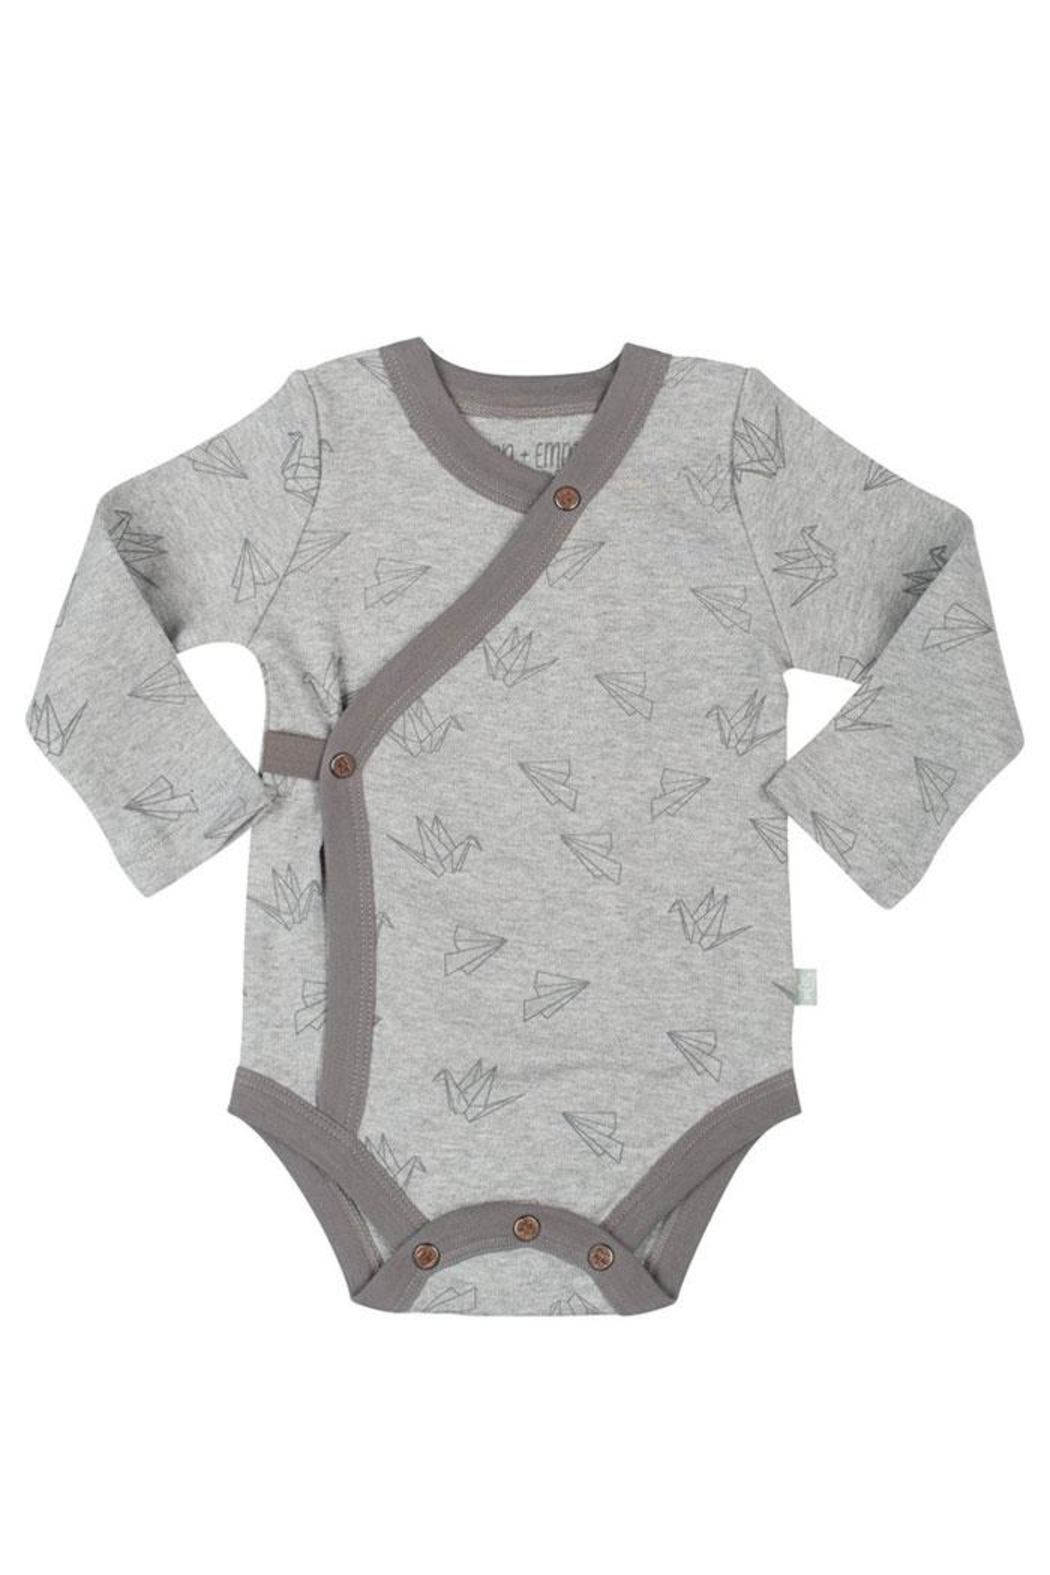 FiNN+EMMA Origami Long Bodysuit - Front Cropped Image